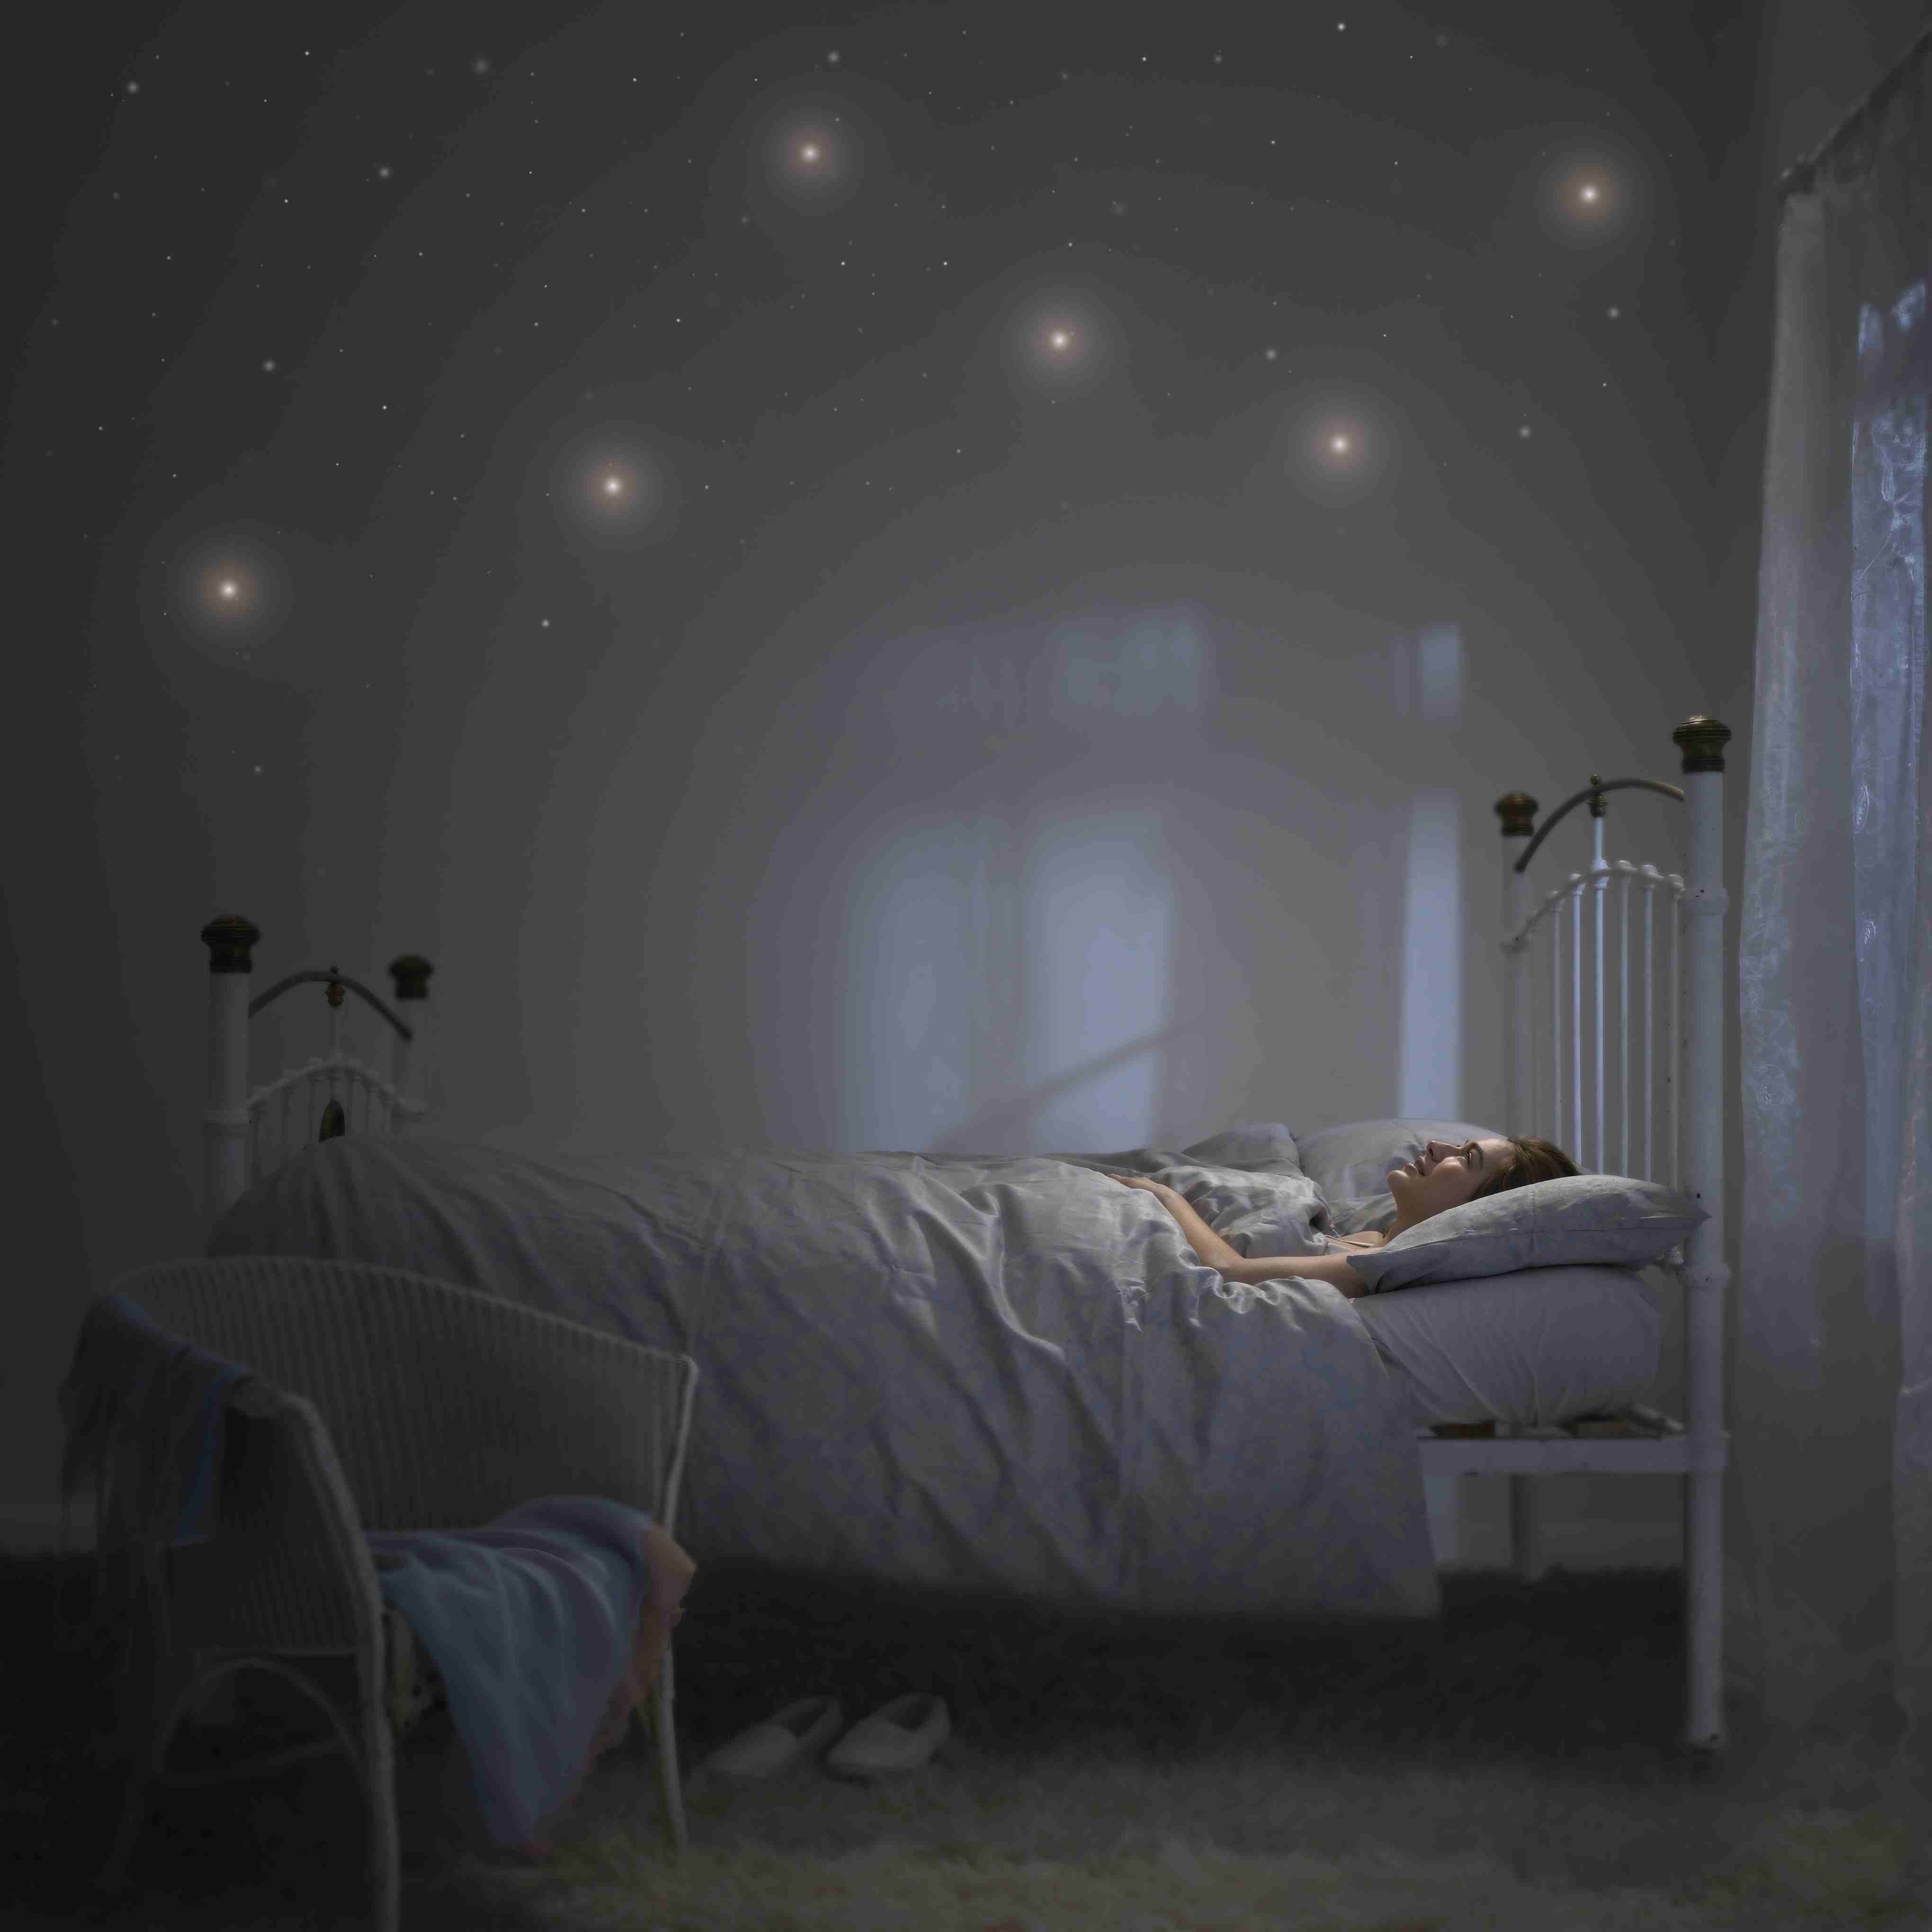 Stars painted or stuck on bedroom walls glow in the dark because of phosphorescence.